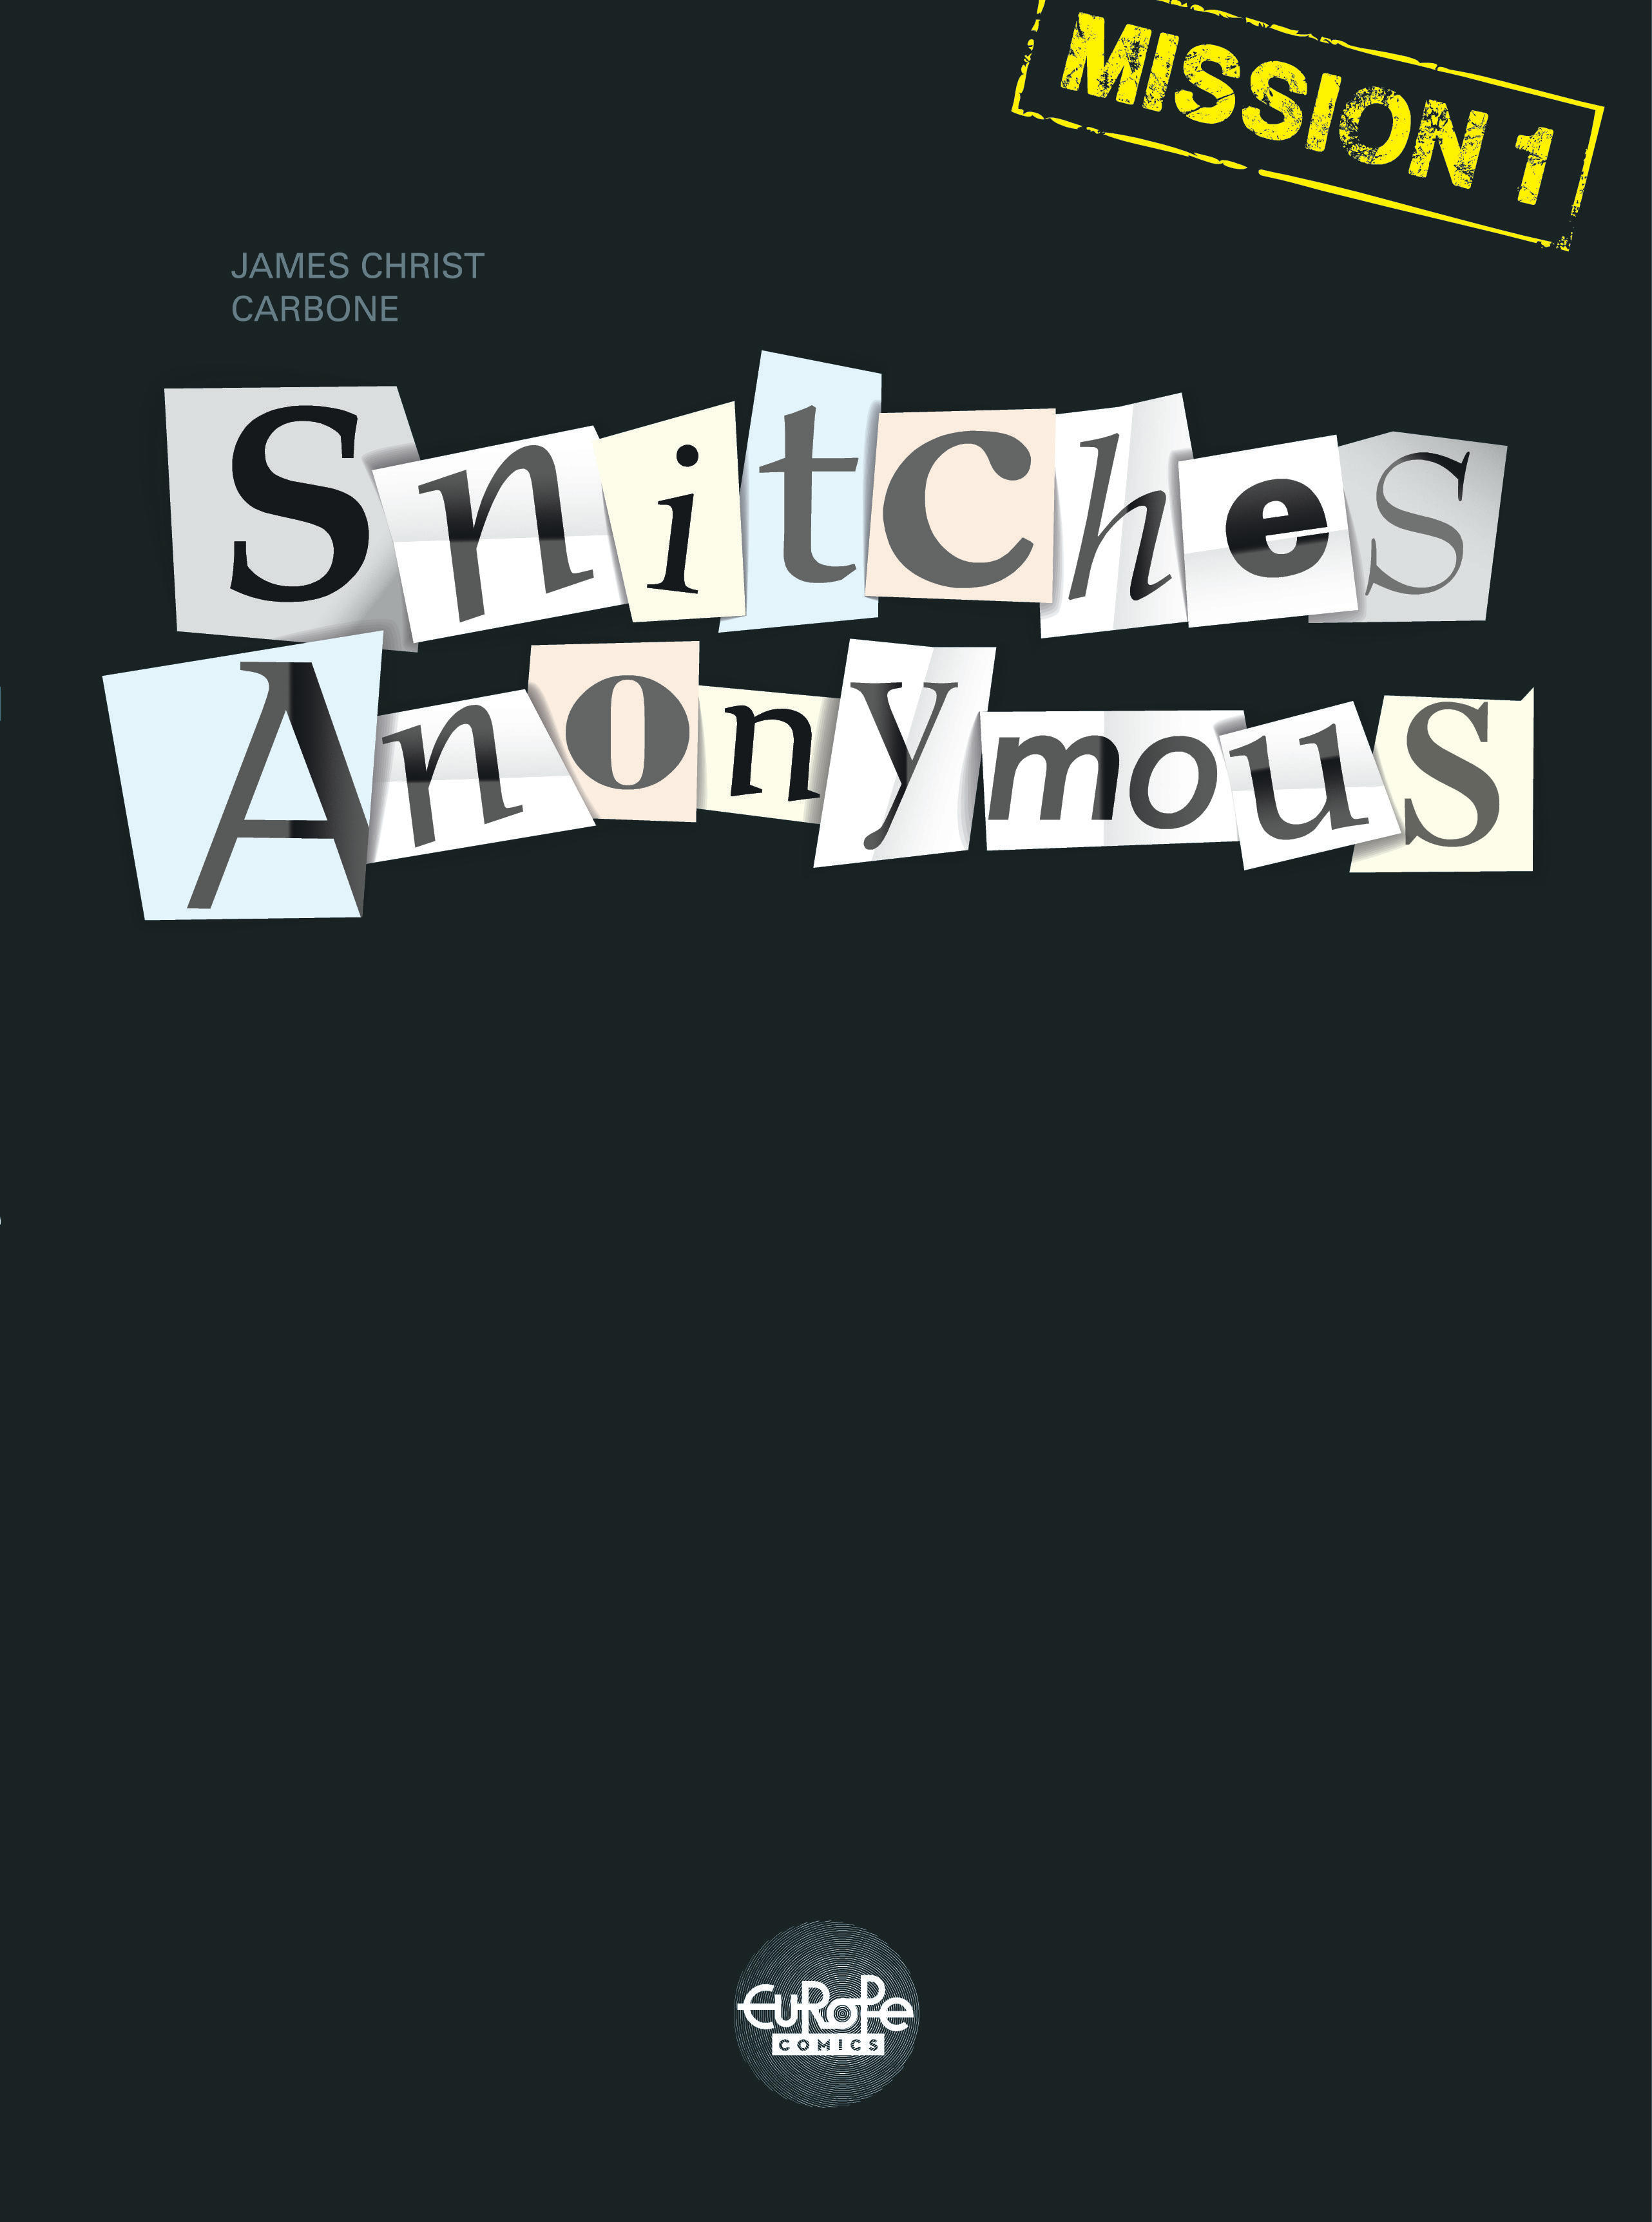 Snitches Anonymous - Mission 1